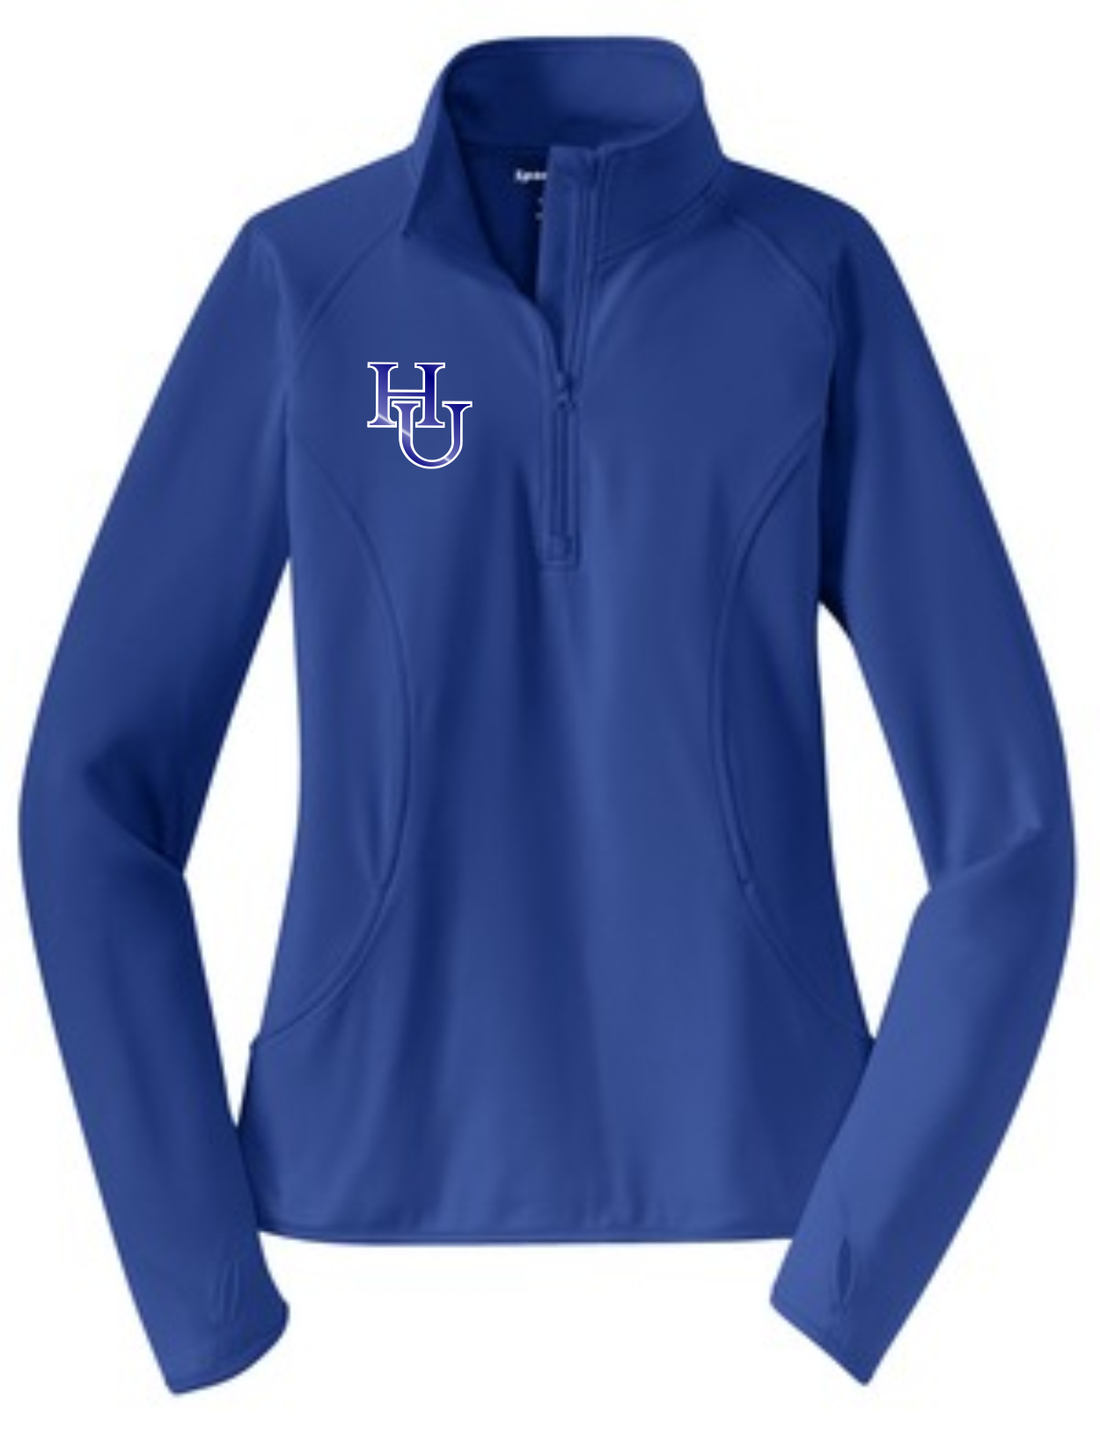 HAMPTON vs EVERYBODY METALLIC LADIES PULLOVER